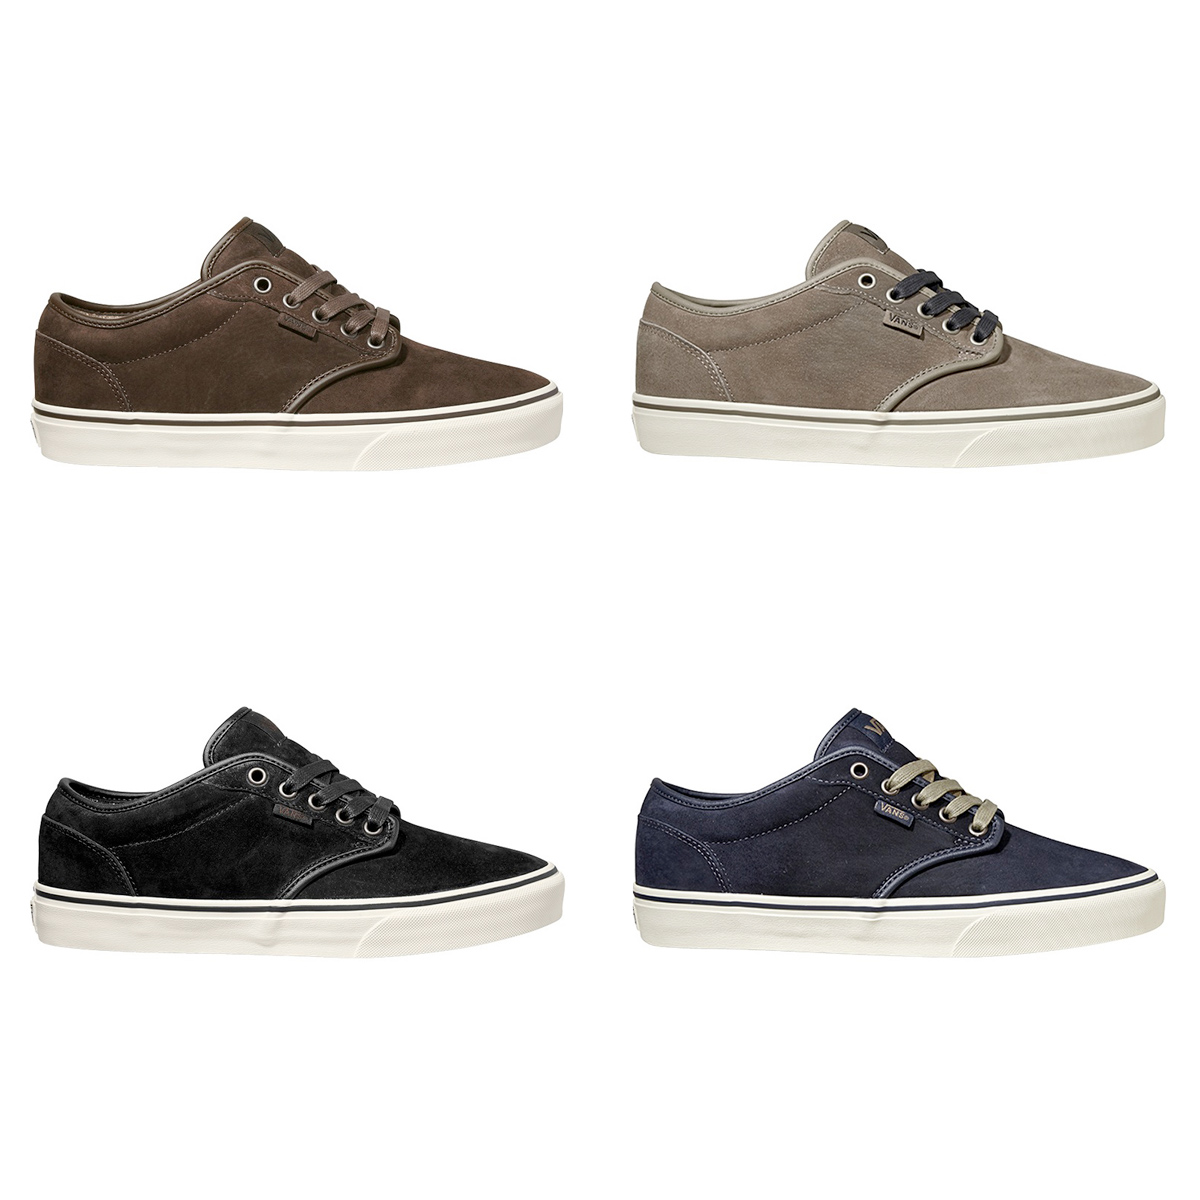 4a14487190 Details about Vans Mens Shoes - Atwood (MTE) Mountain Edition - Trainers